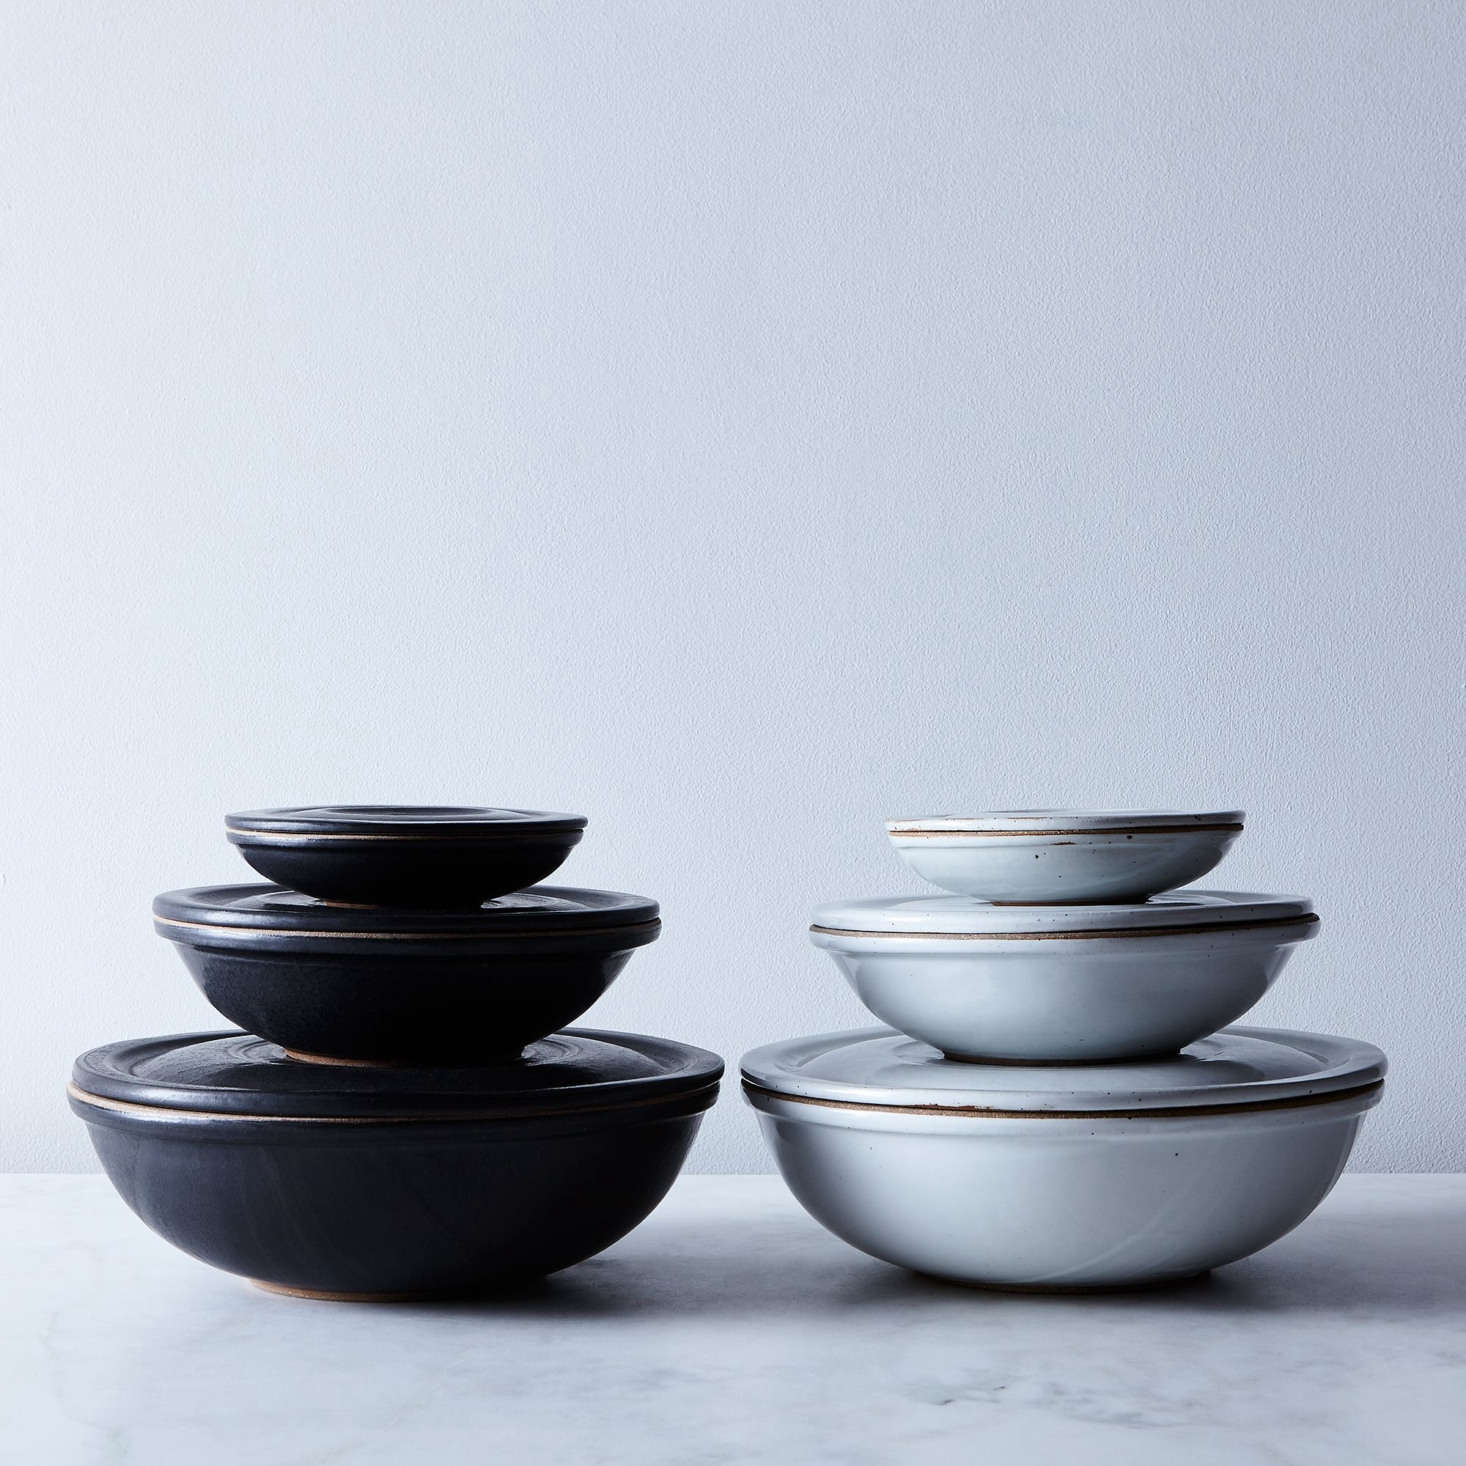 We first got to know Bay Area ceramicist Sarah Kersten when she exhibited at our Remodelista markets; she's since gone on to grow her practice to include dinnerware, fermentation jars, covered bowls, and vases. Her Ceramic Nesting Bowls are $65 for a medium size or $260 for a set of three at Food52.